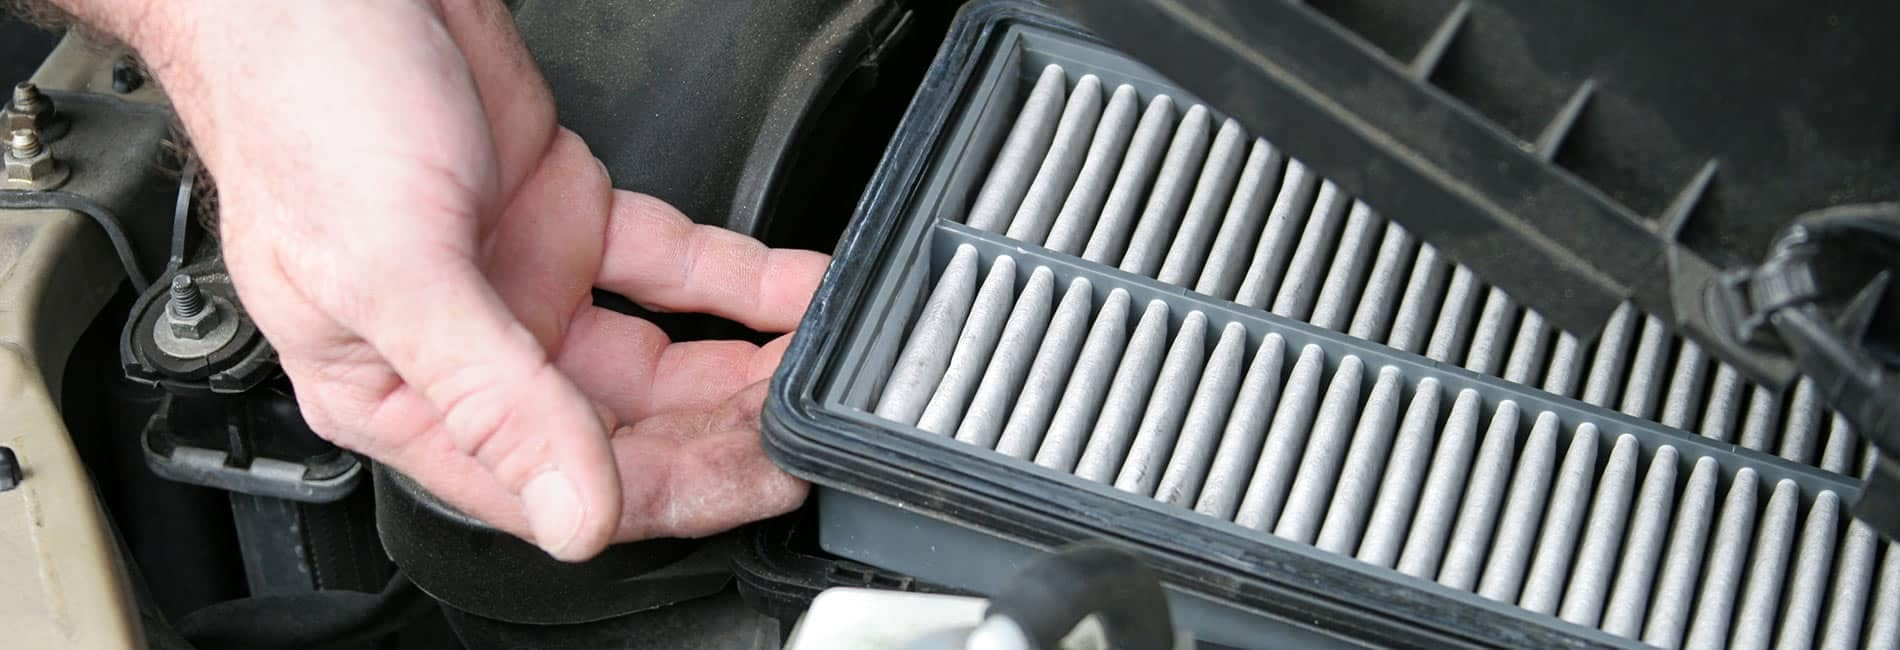 mans hand pulling out an air filter